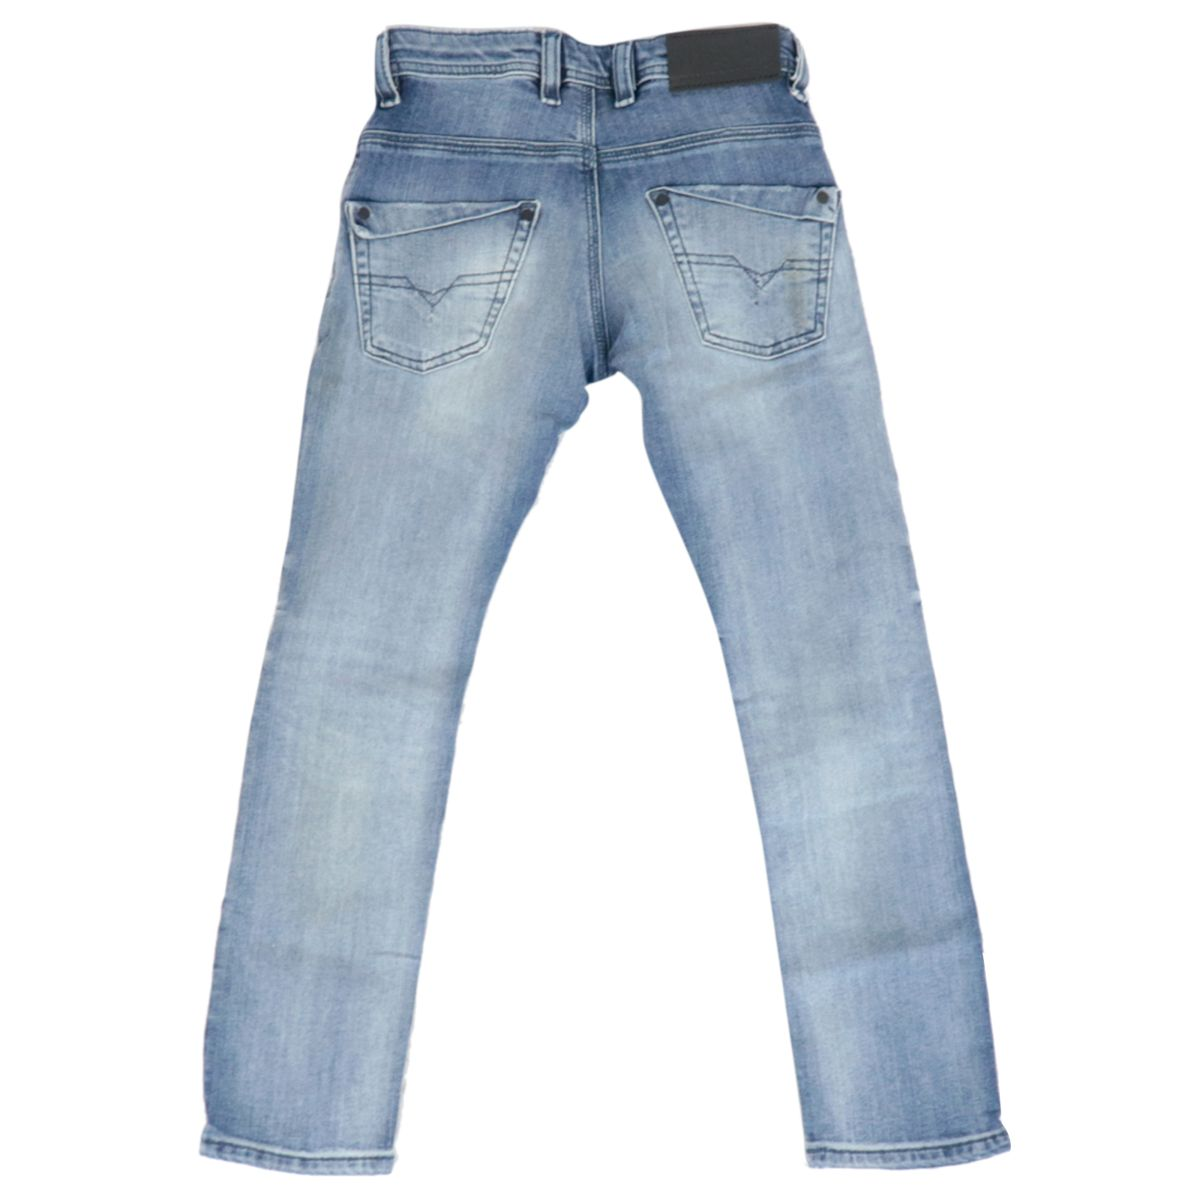 5-pocket Krooley jeans in light denim Medium denim Diesel